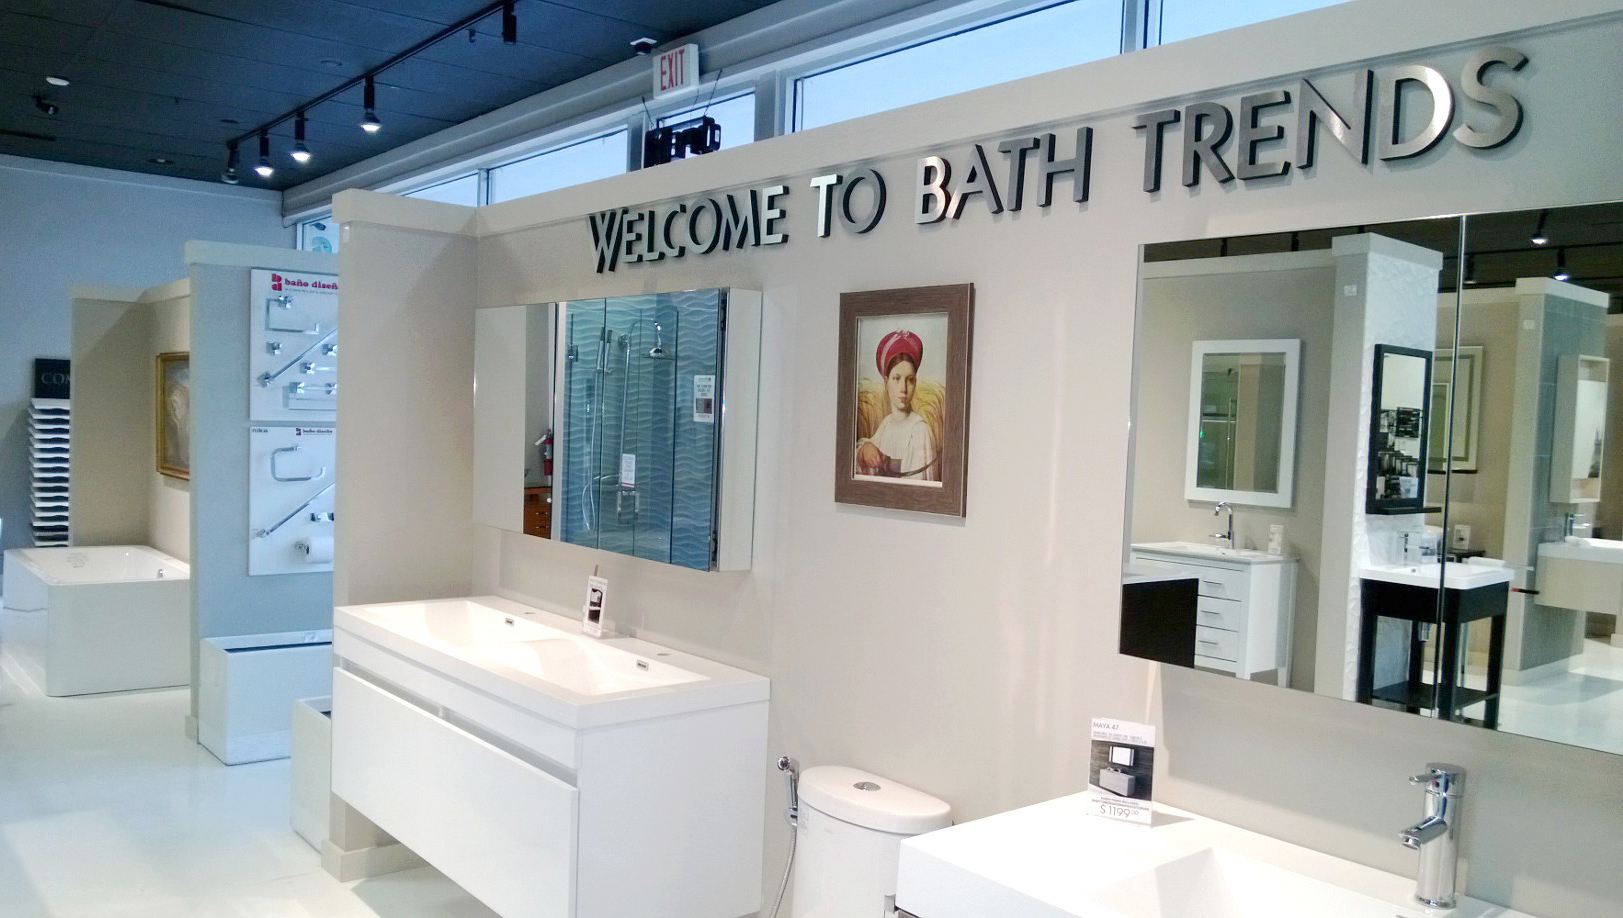 Bath trends in fort lauderdale fl 954 533 5 for Bathroom remodeling fort lauderdale fl